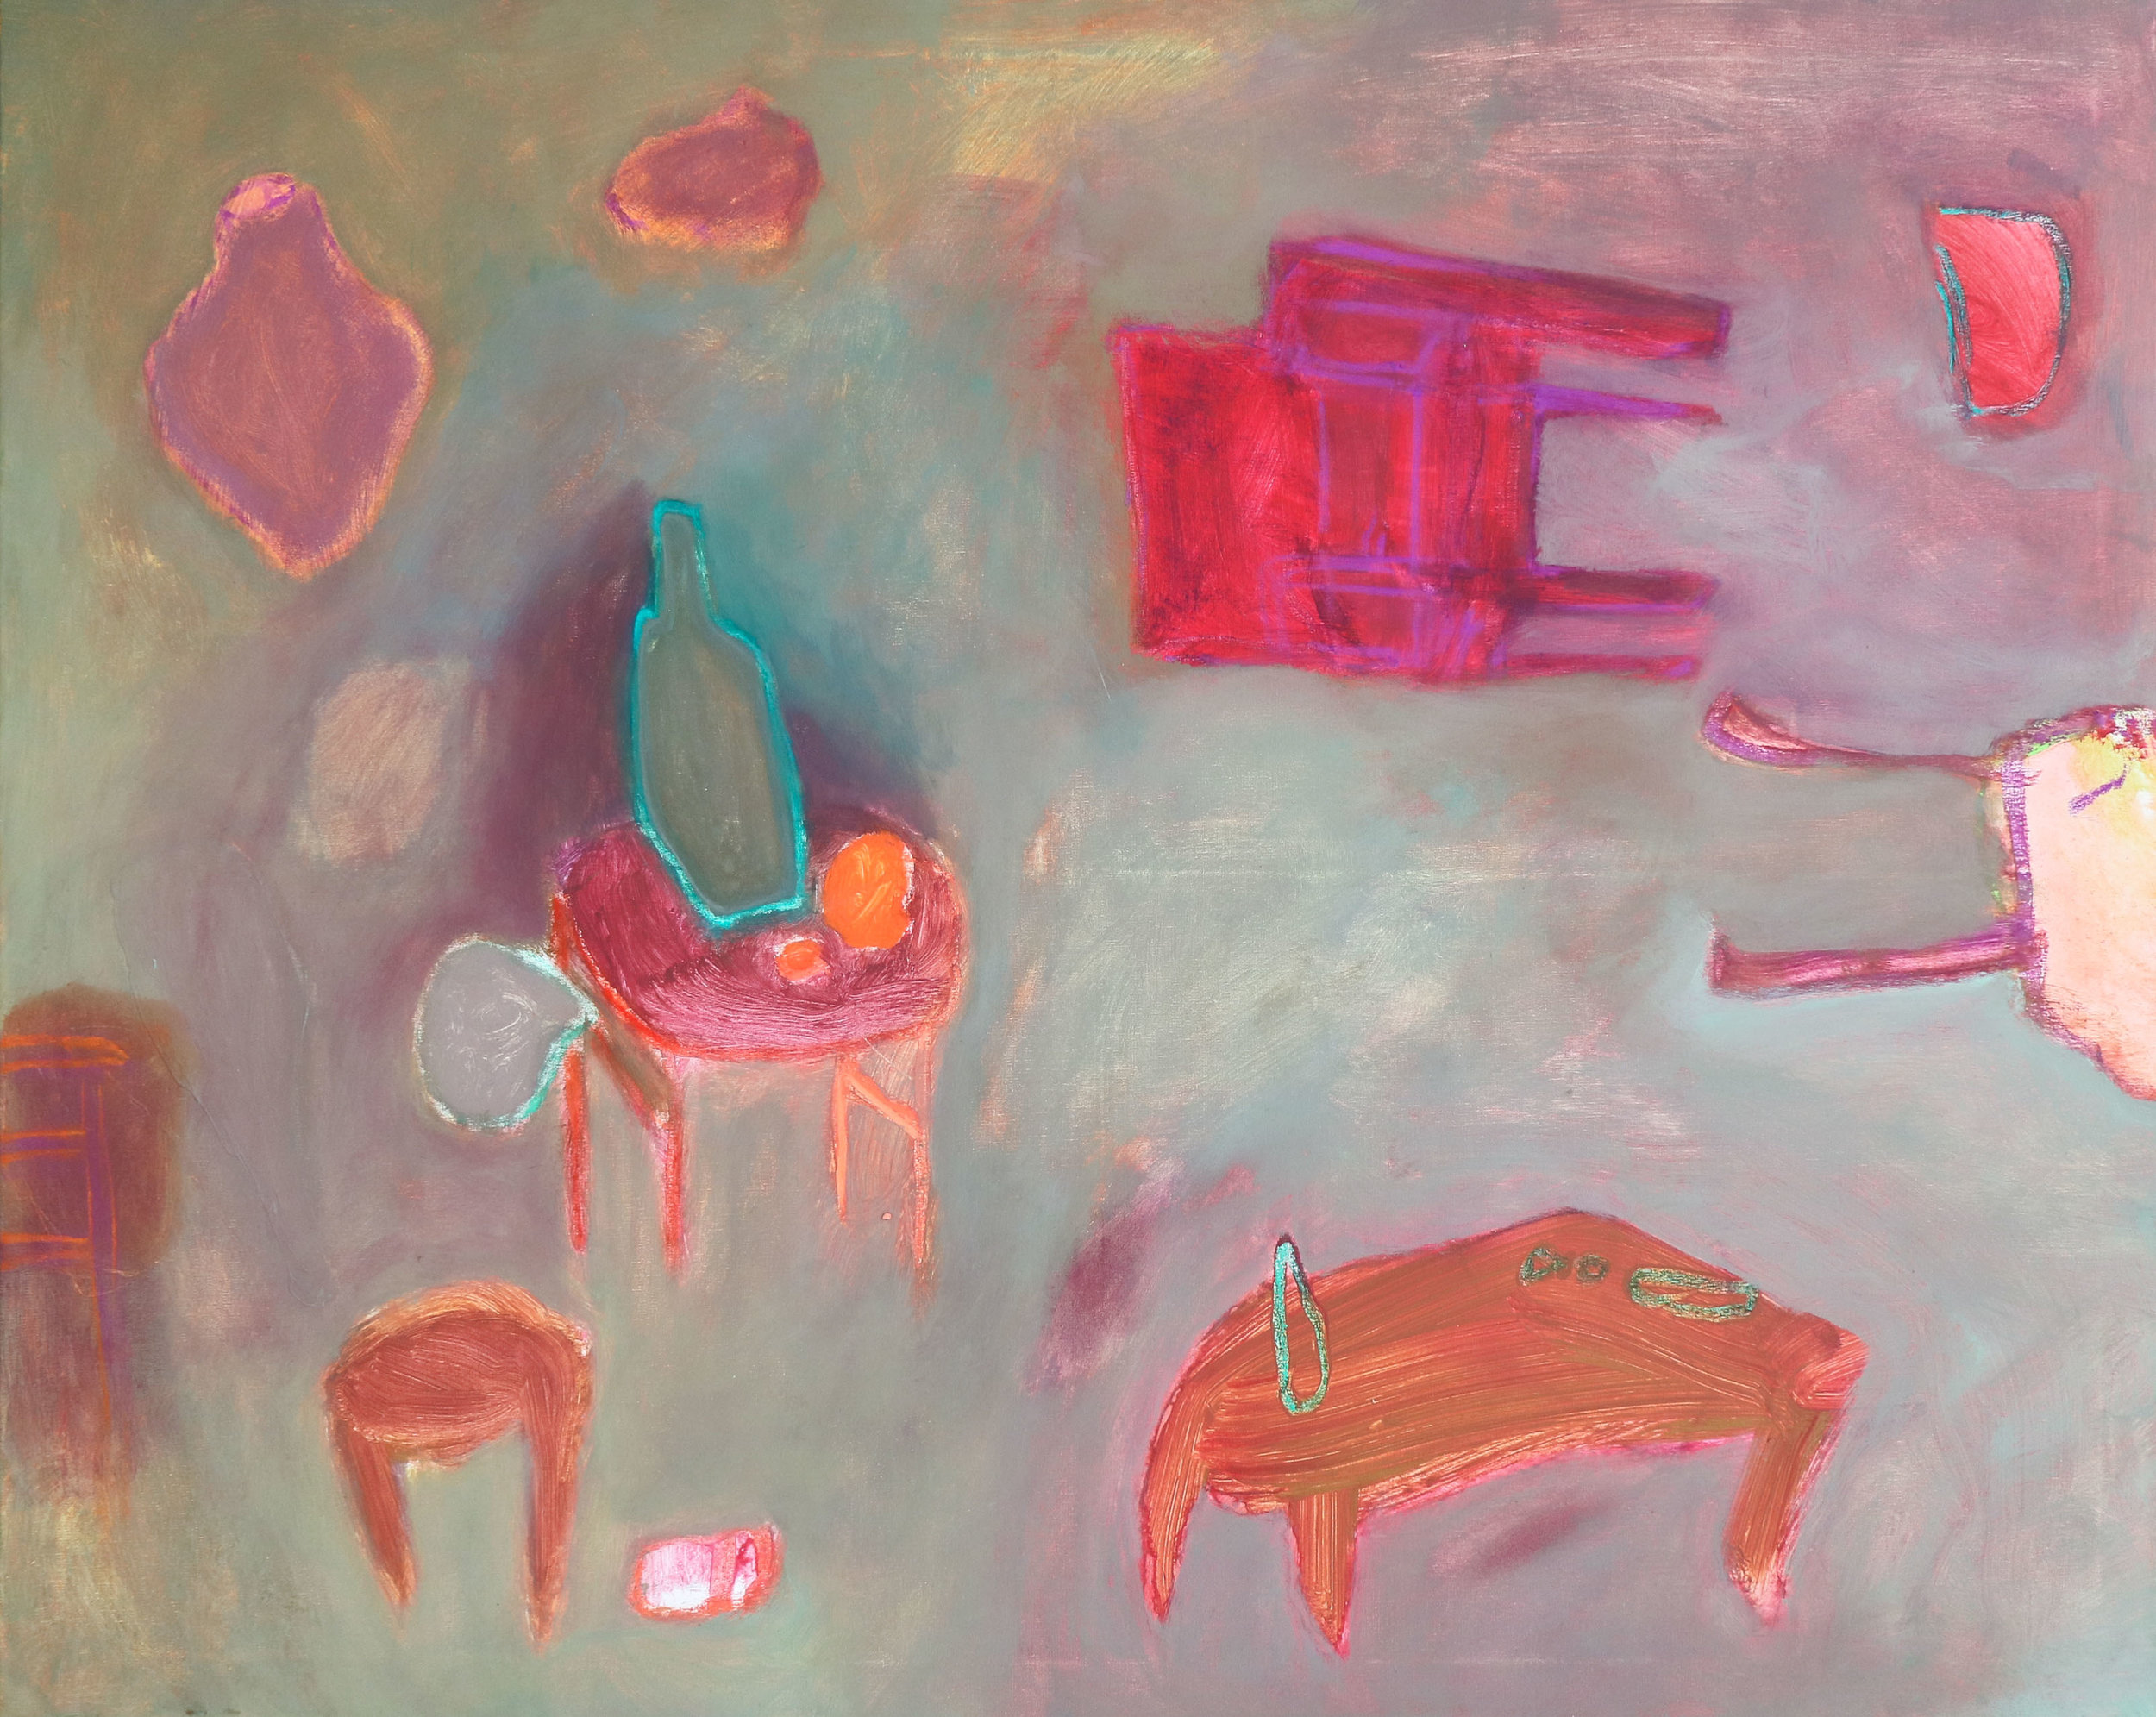 Red Chair in Mint Room I, 2018, mixed media on canvas, 80 x 100 cm, €1700